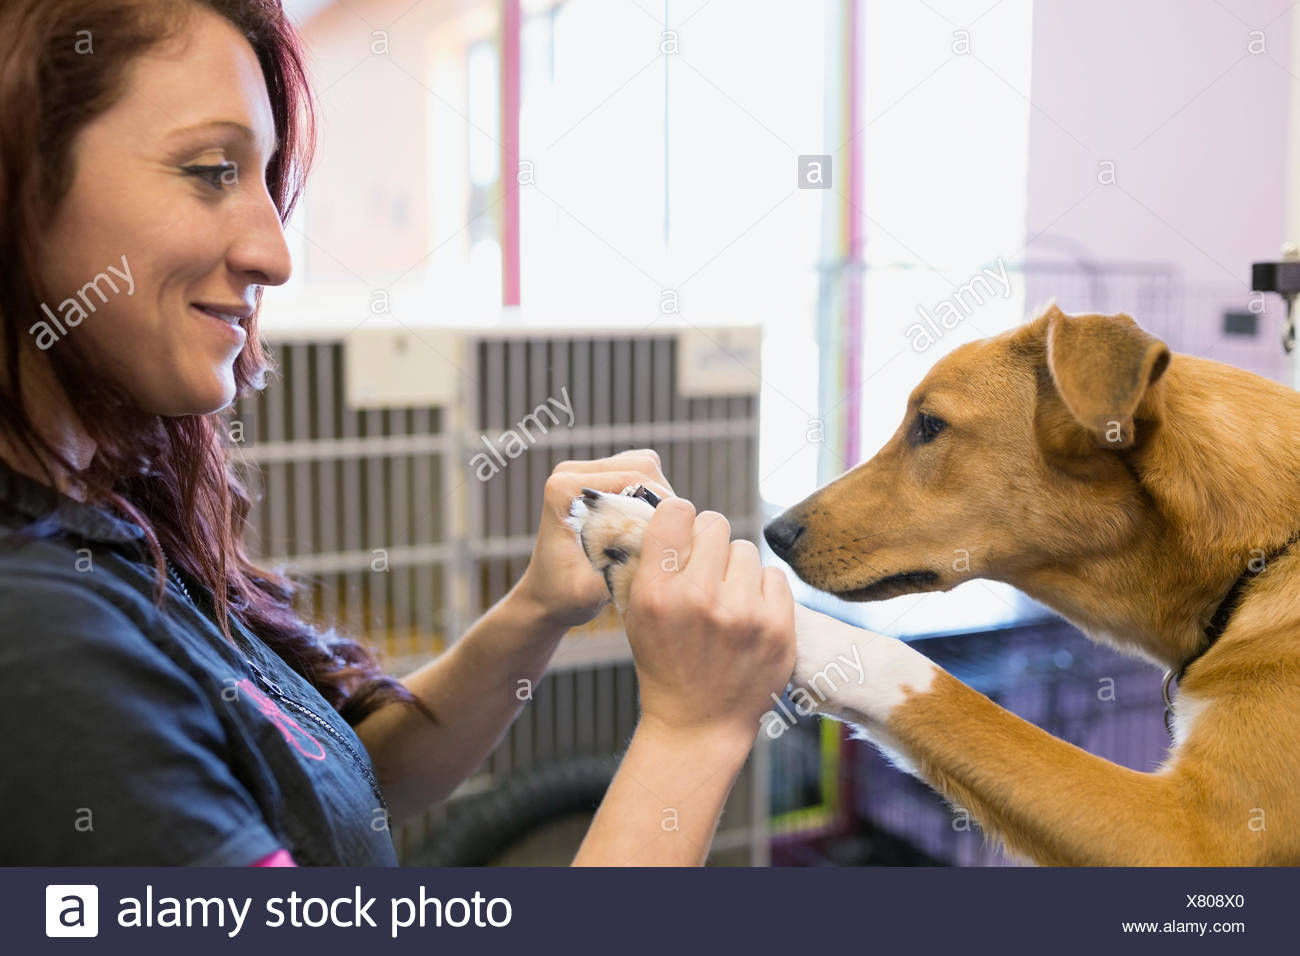 Dog groomer clipping dogs nails - Stock Image